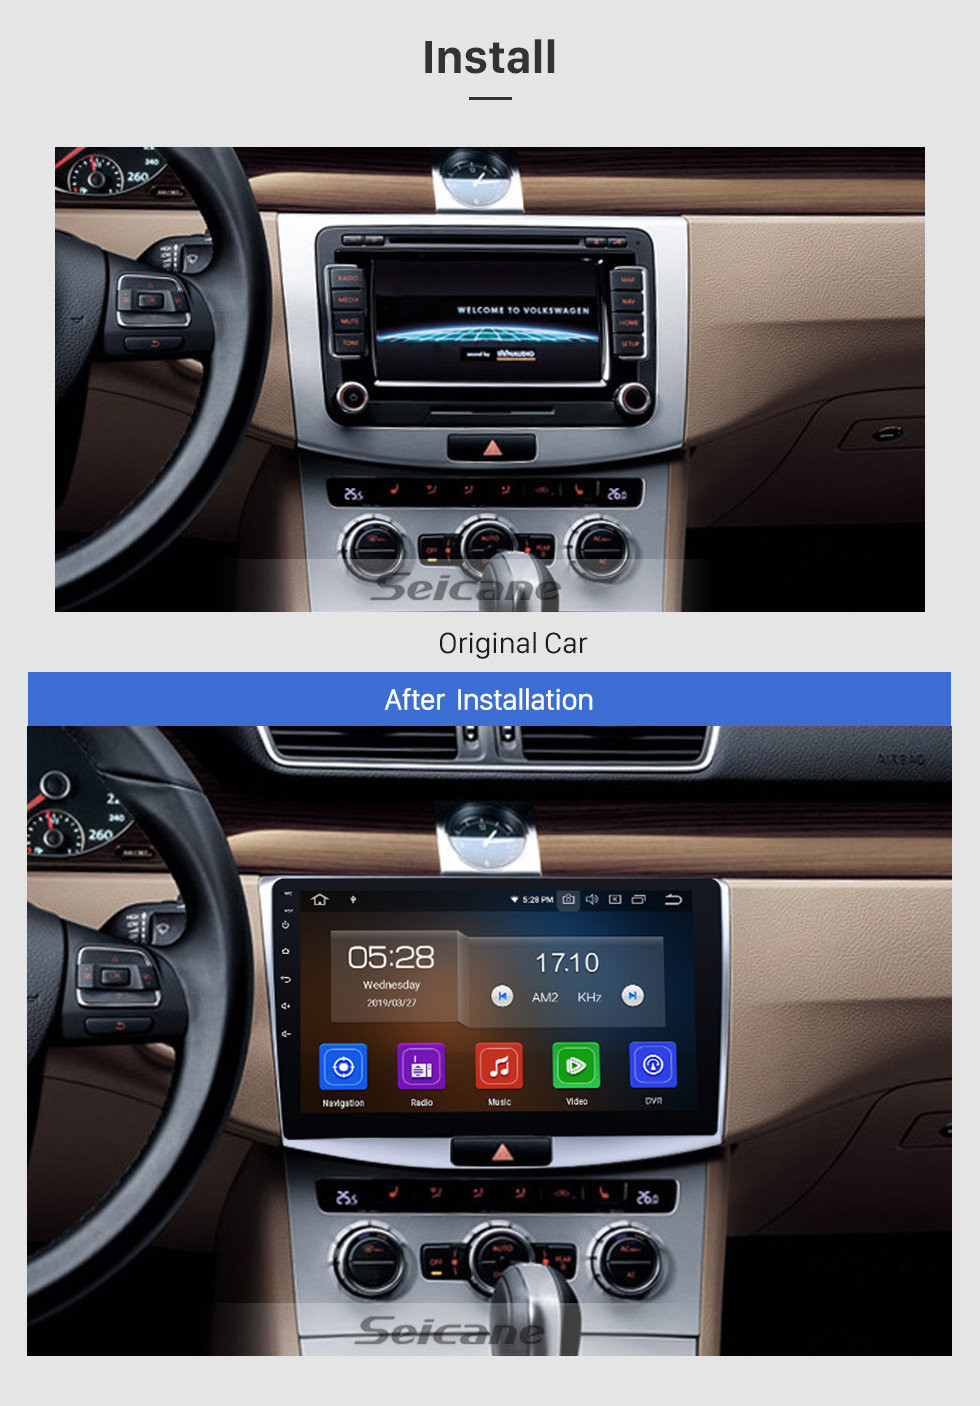 Seicane 10.1 Inch Aftermarket Android 10.0 Radio GPS Navigation system For 2012-2015 VW Volkswagen MAGOTAN 1024*600 Touch Screen TPMS DVR OBD II Wheel Steering Control USB Bluetooth WiFi Video AUX